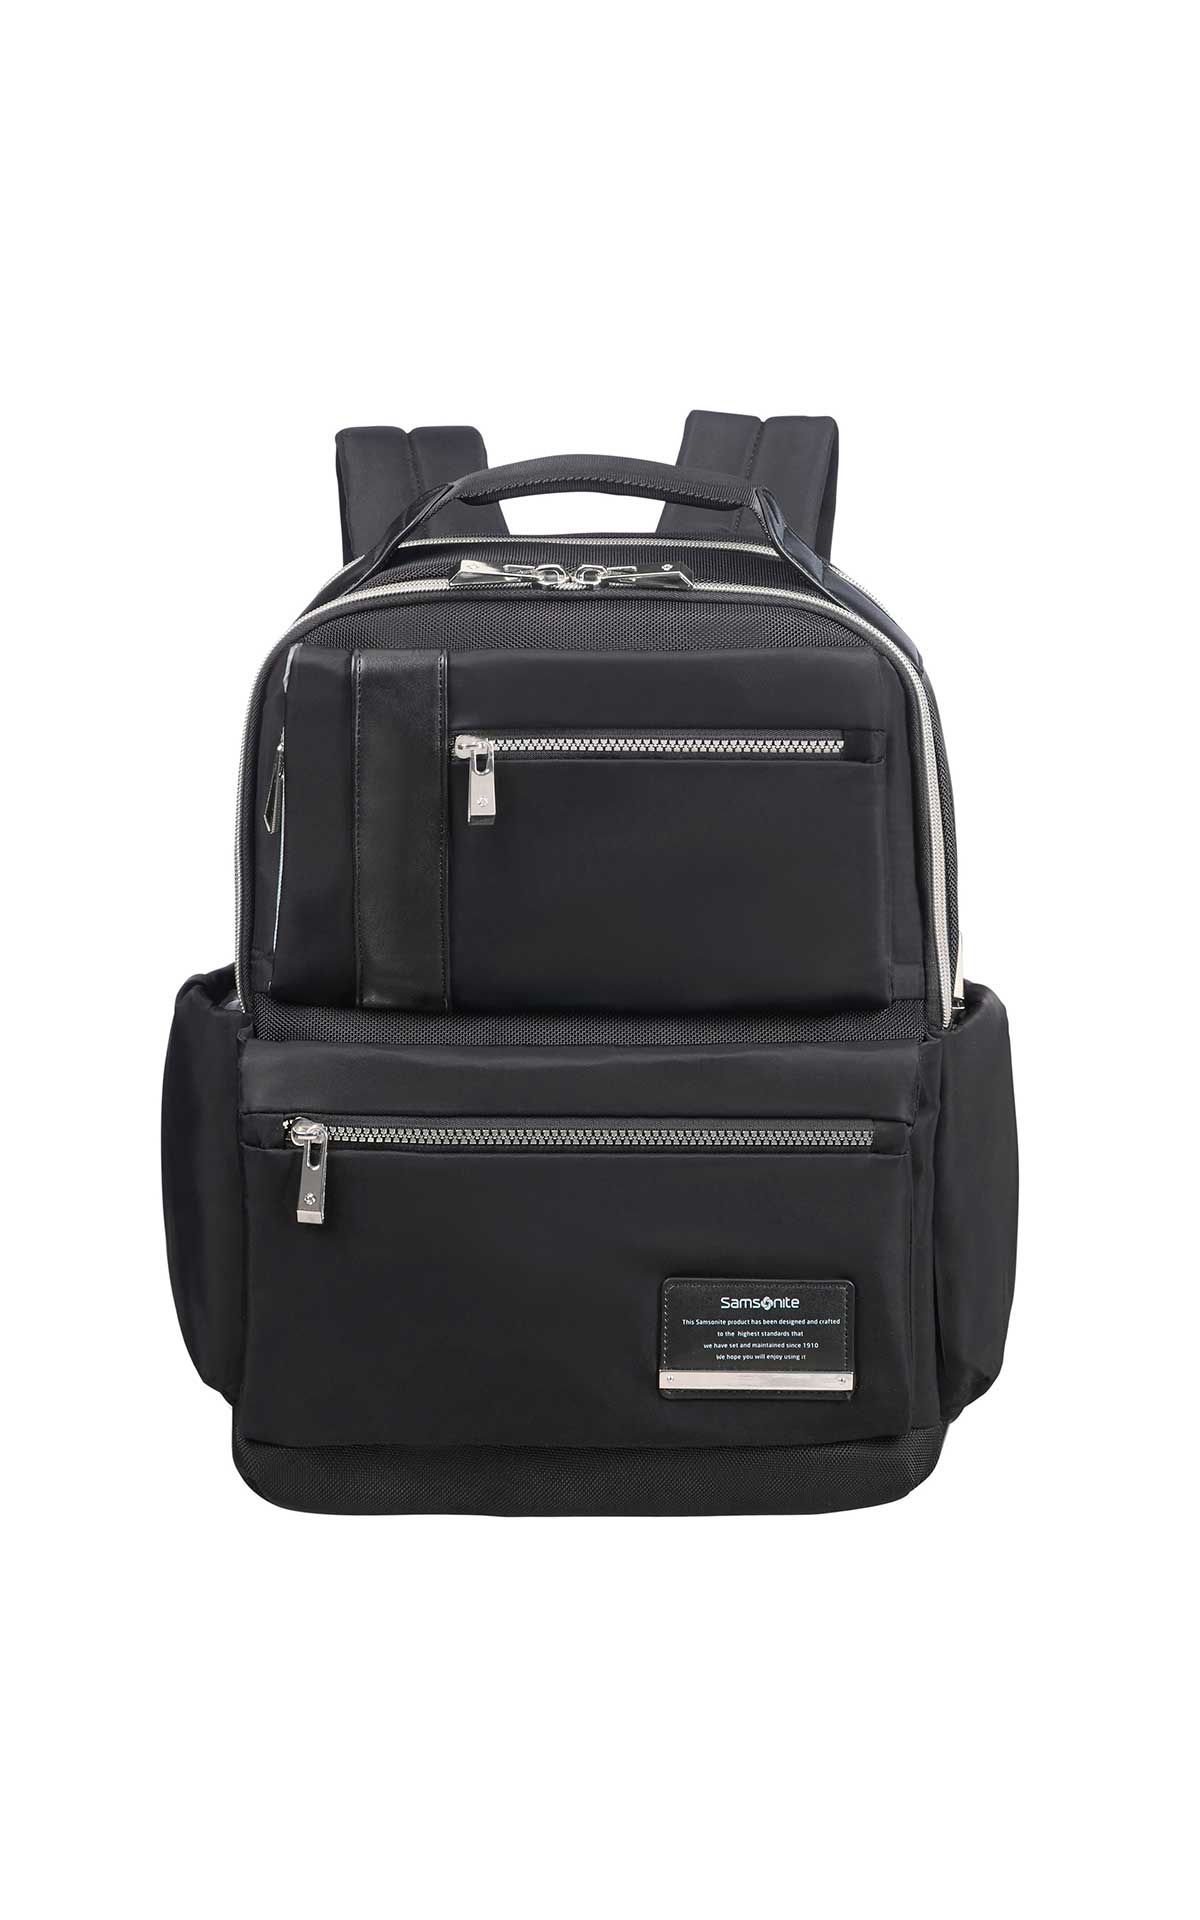 Openroad backpack Samsonite